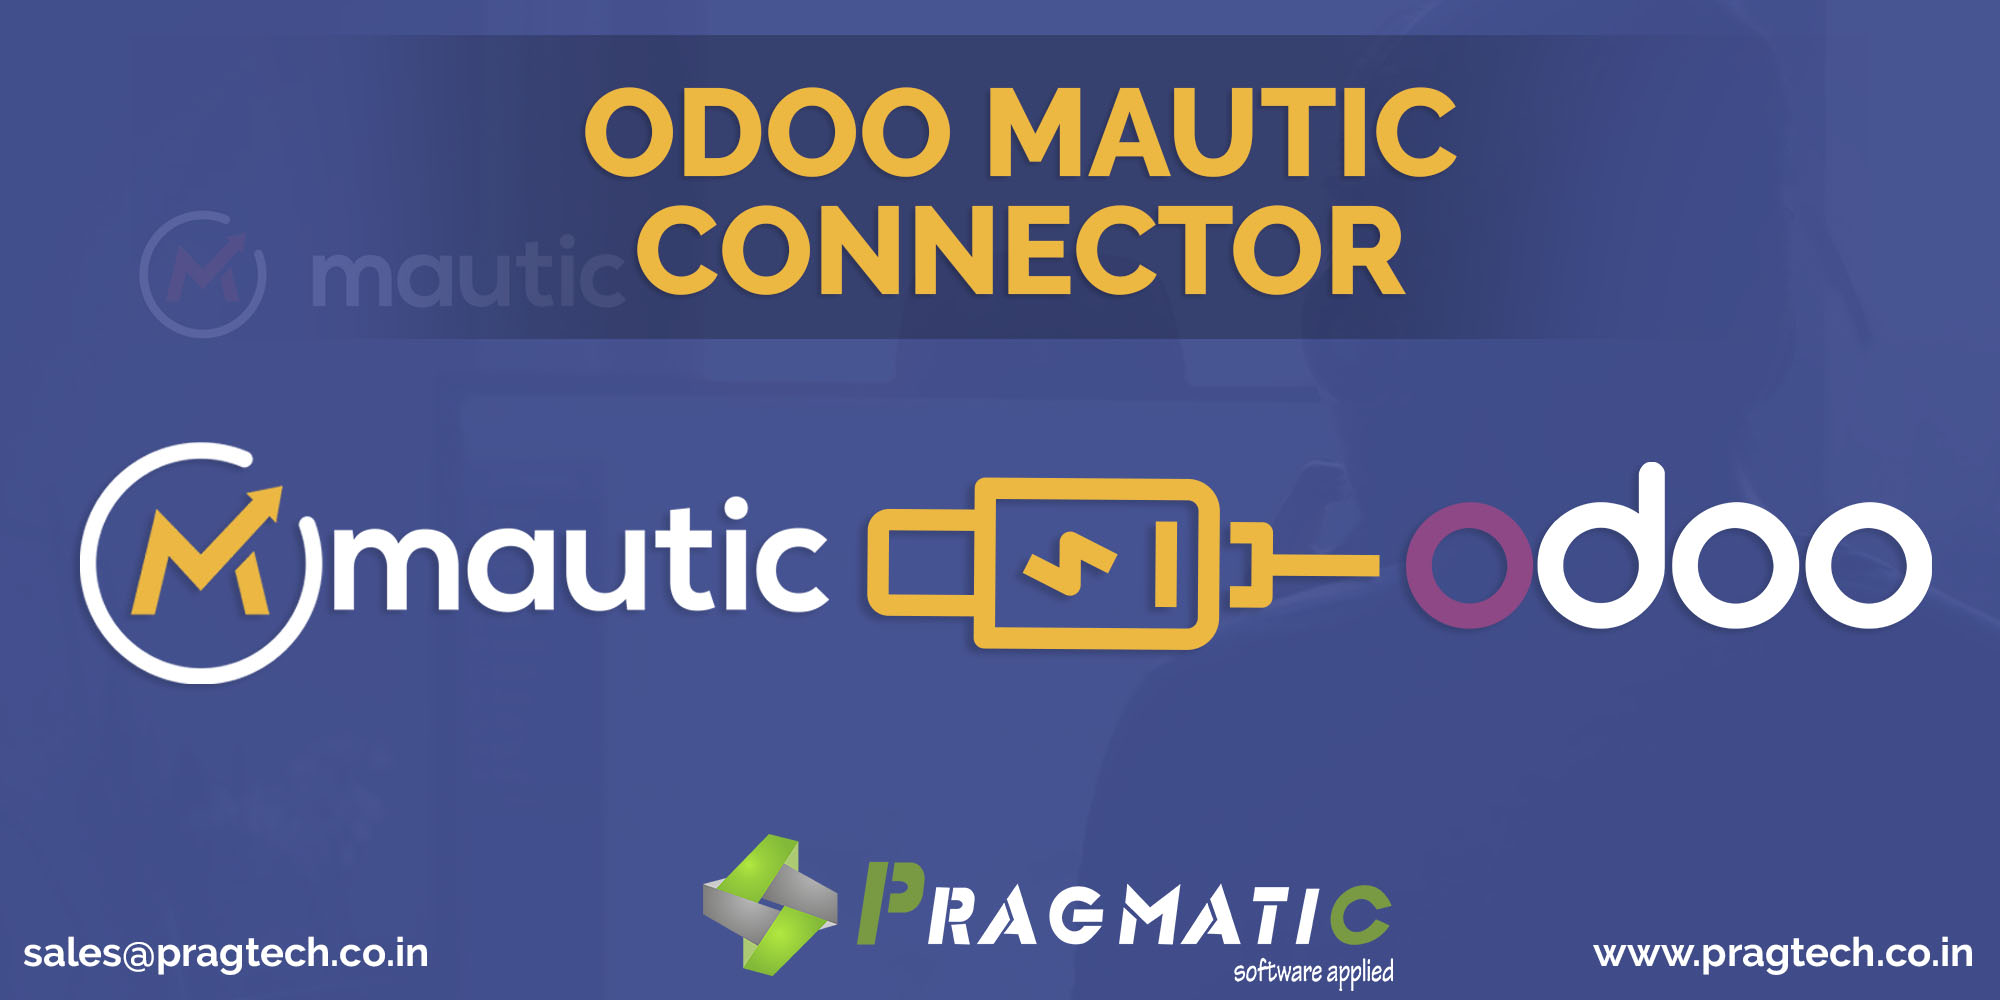 Leverage the strengths of 2 industry leading enterprise softwares Mautic and Odoo